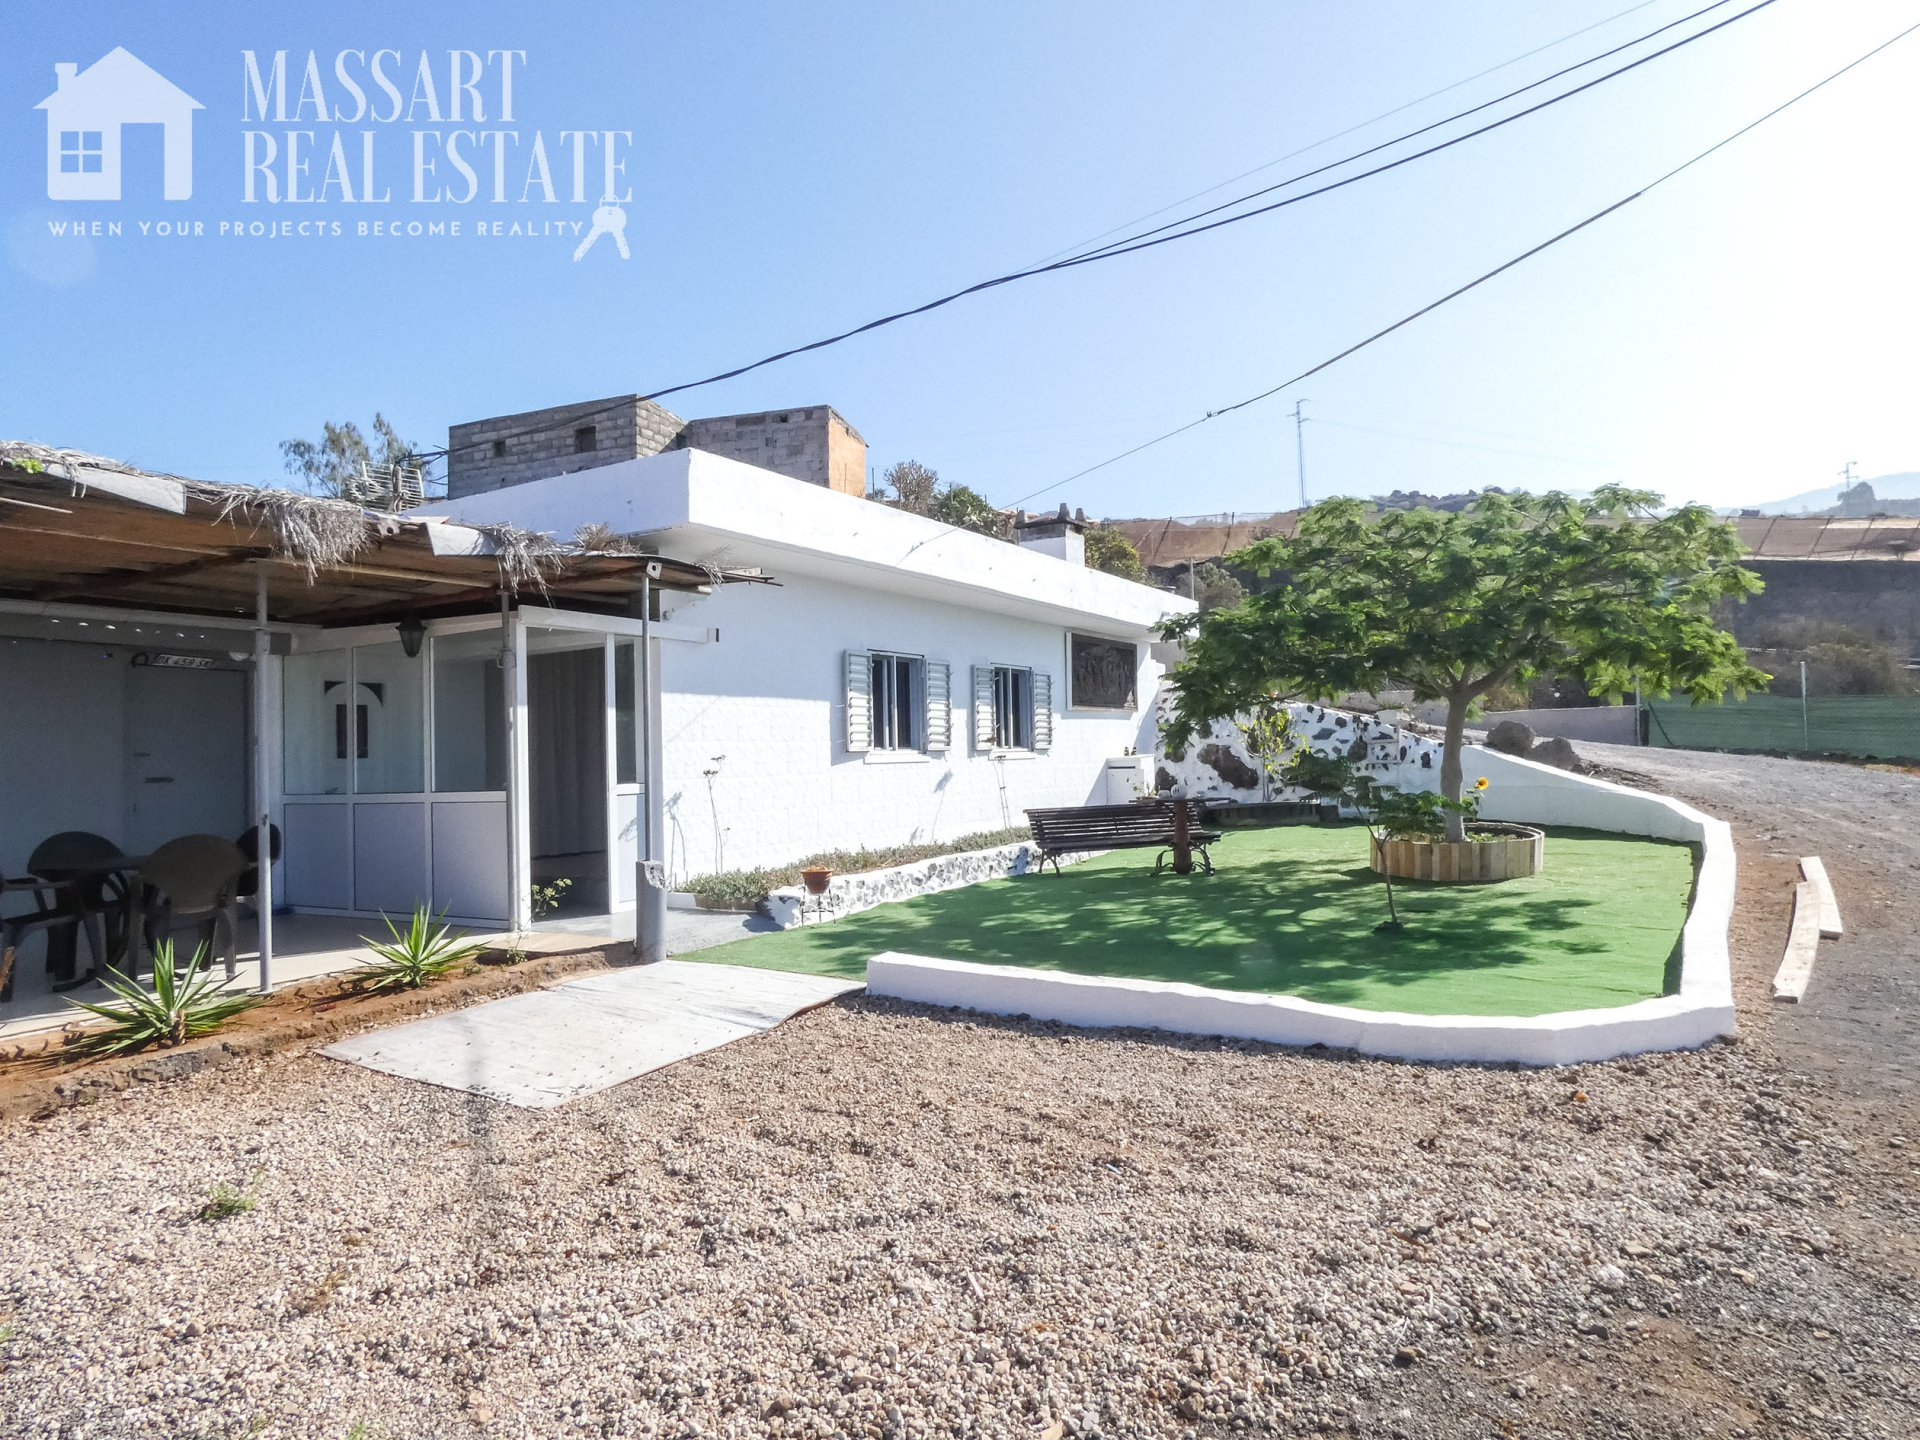 Finca located on a plot of 6500 m2 in the upper part of Playa San Juan (Guía de Isora) with panoramic views of the southern coast.